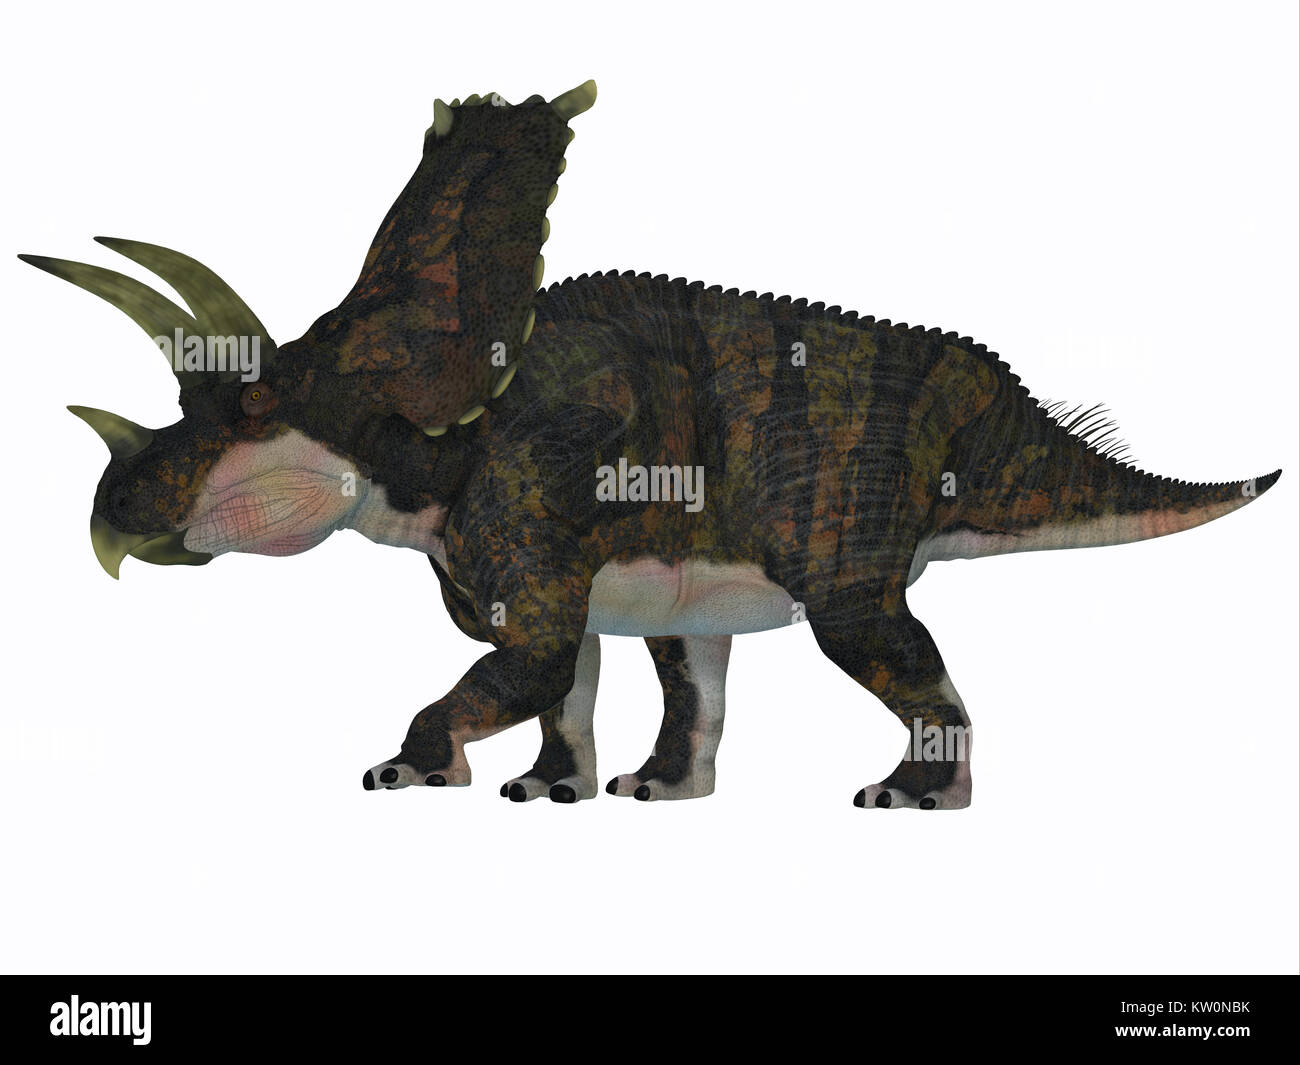 Bravoceratops Dinosaur Side Profile - Bravoceratops was a herbivorous ceratopsian dinosaur that lived in Texas, - Stock Image